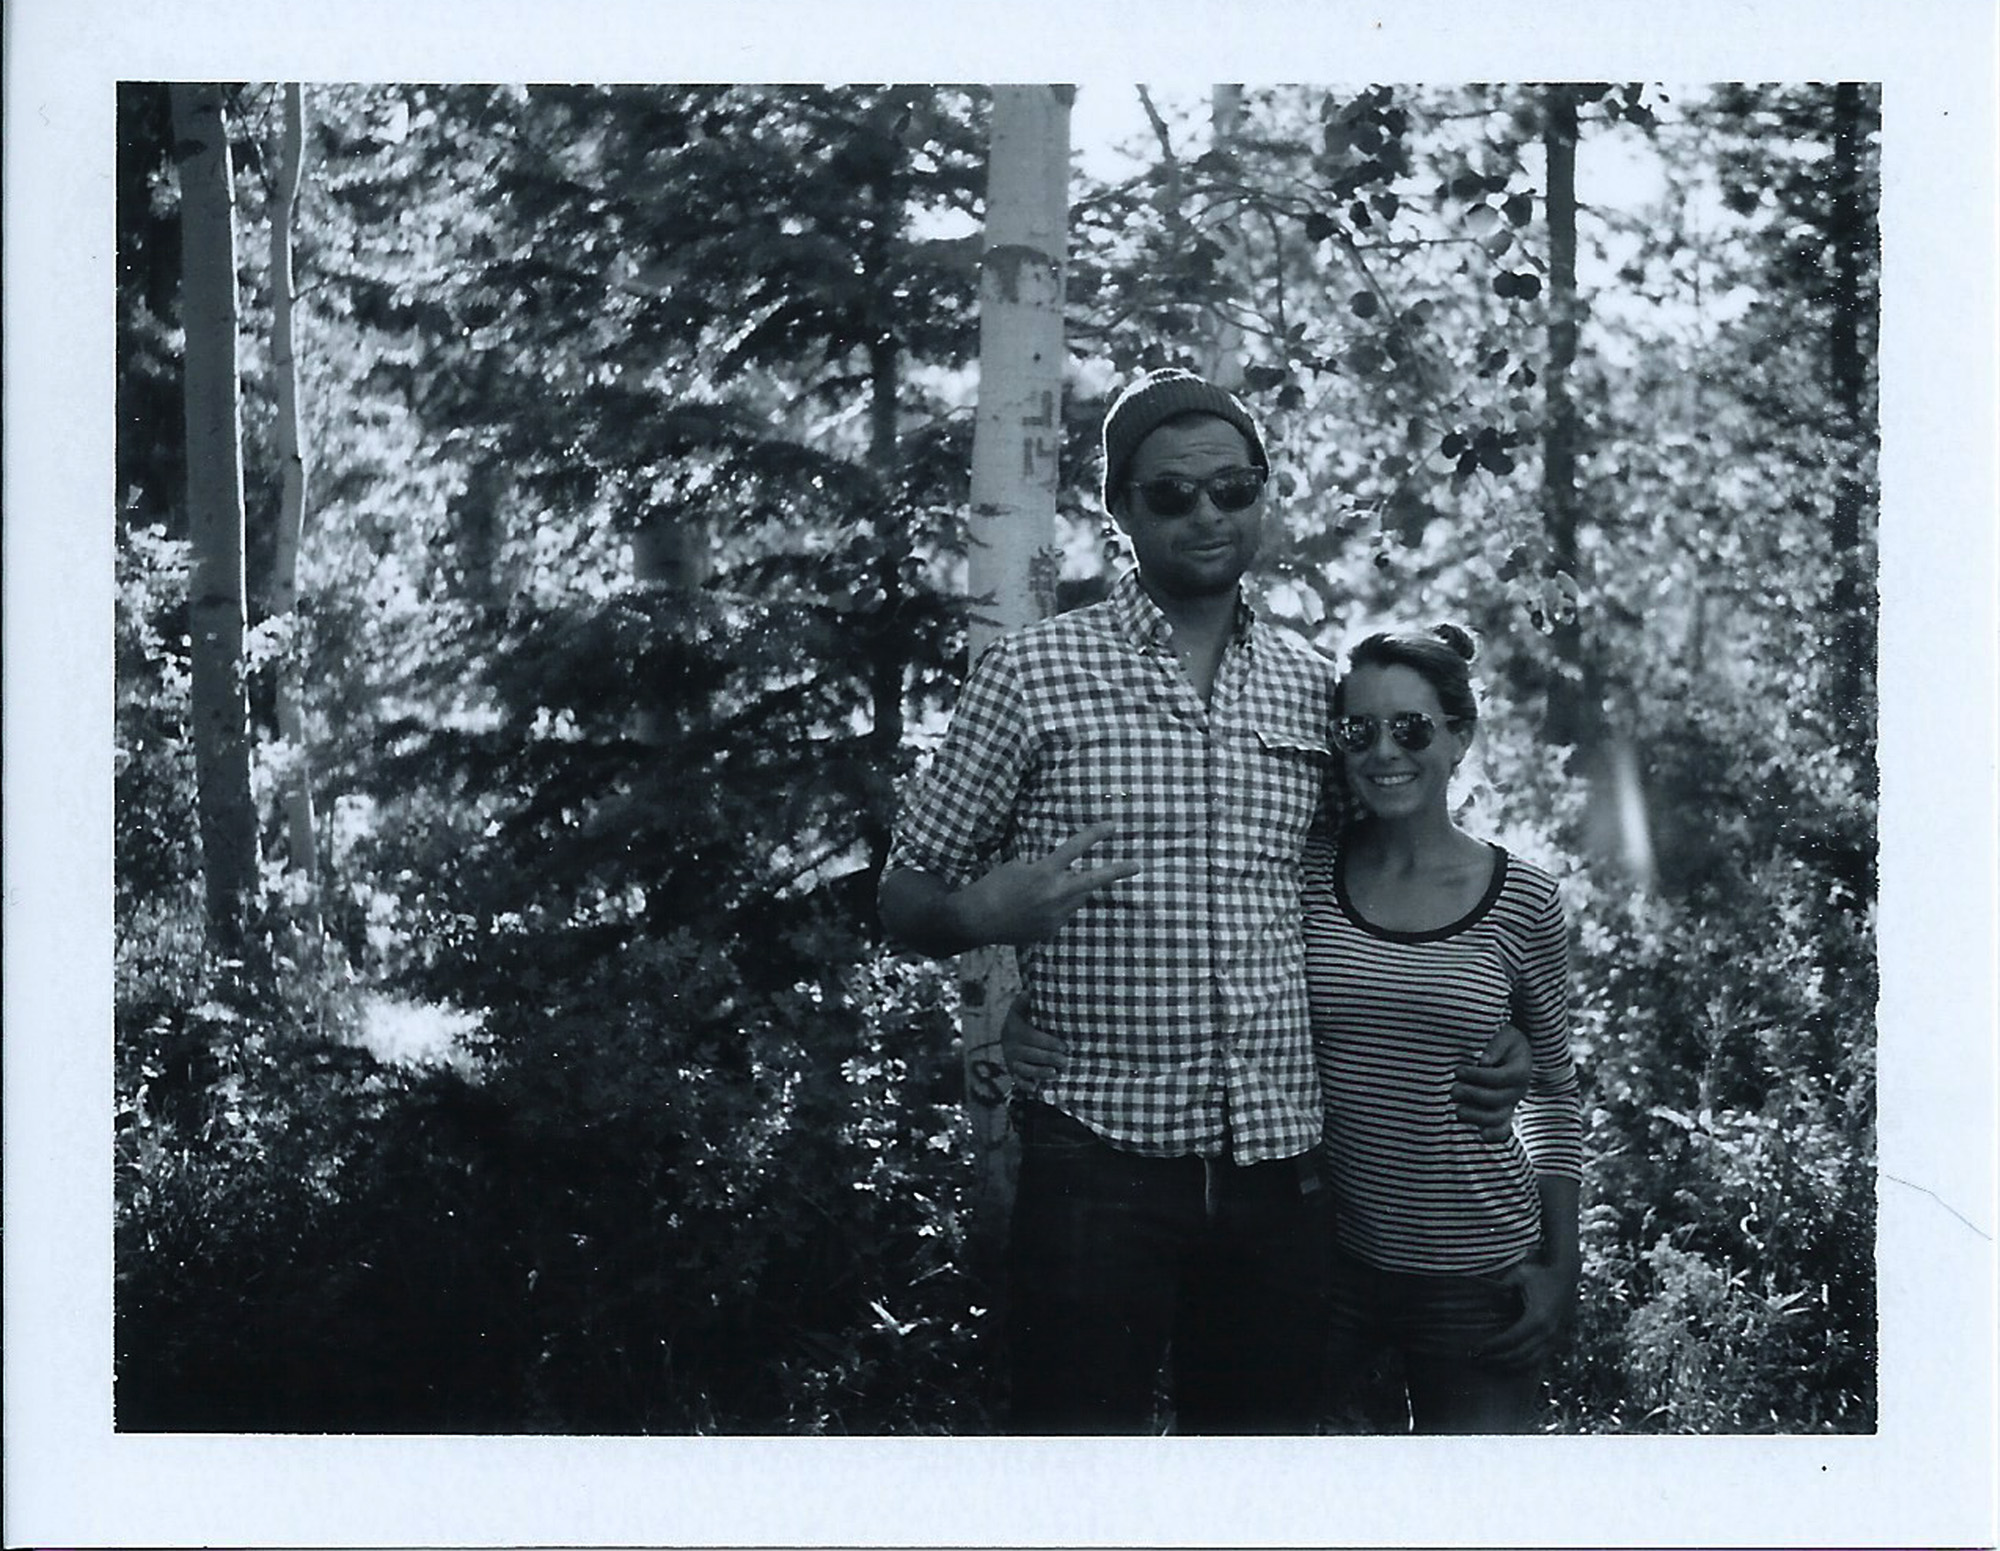 Moon lake polaroid